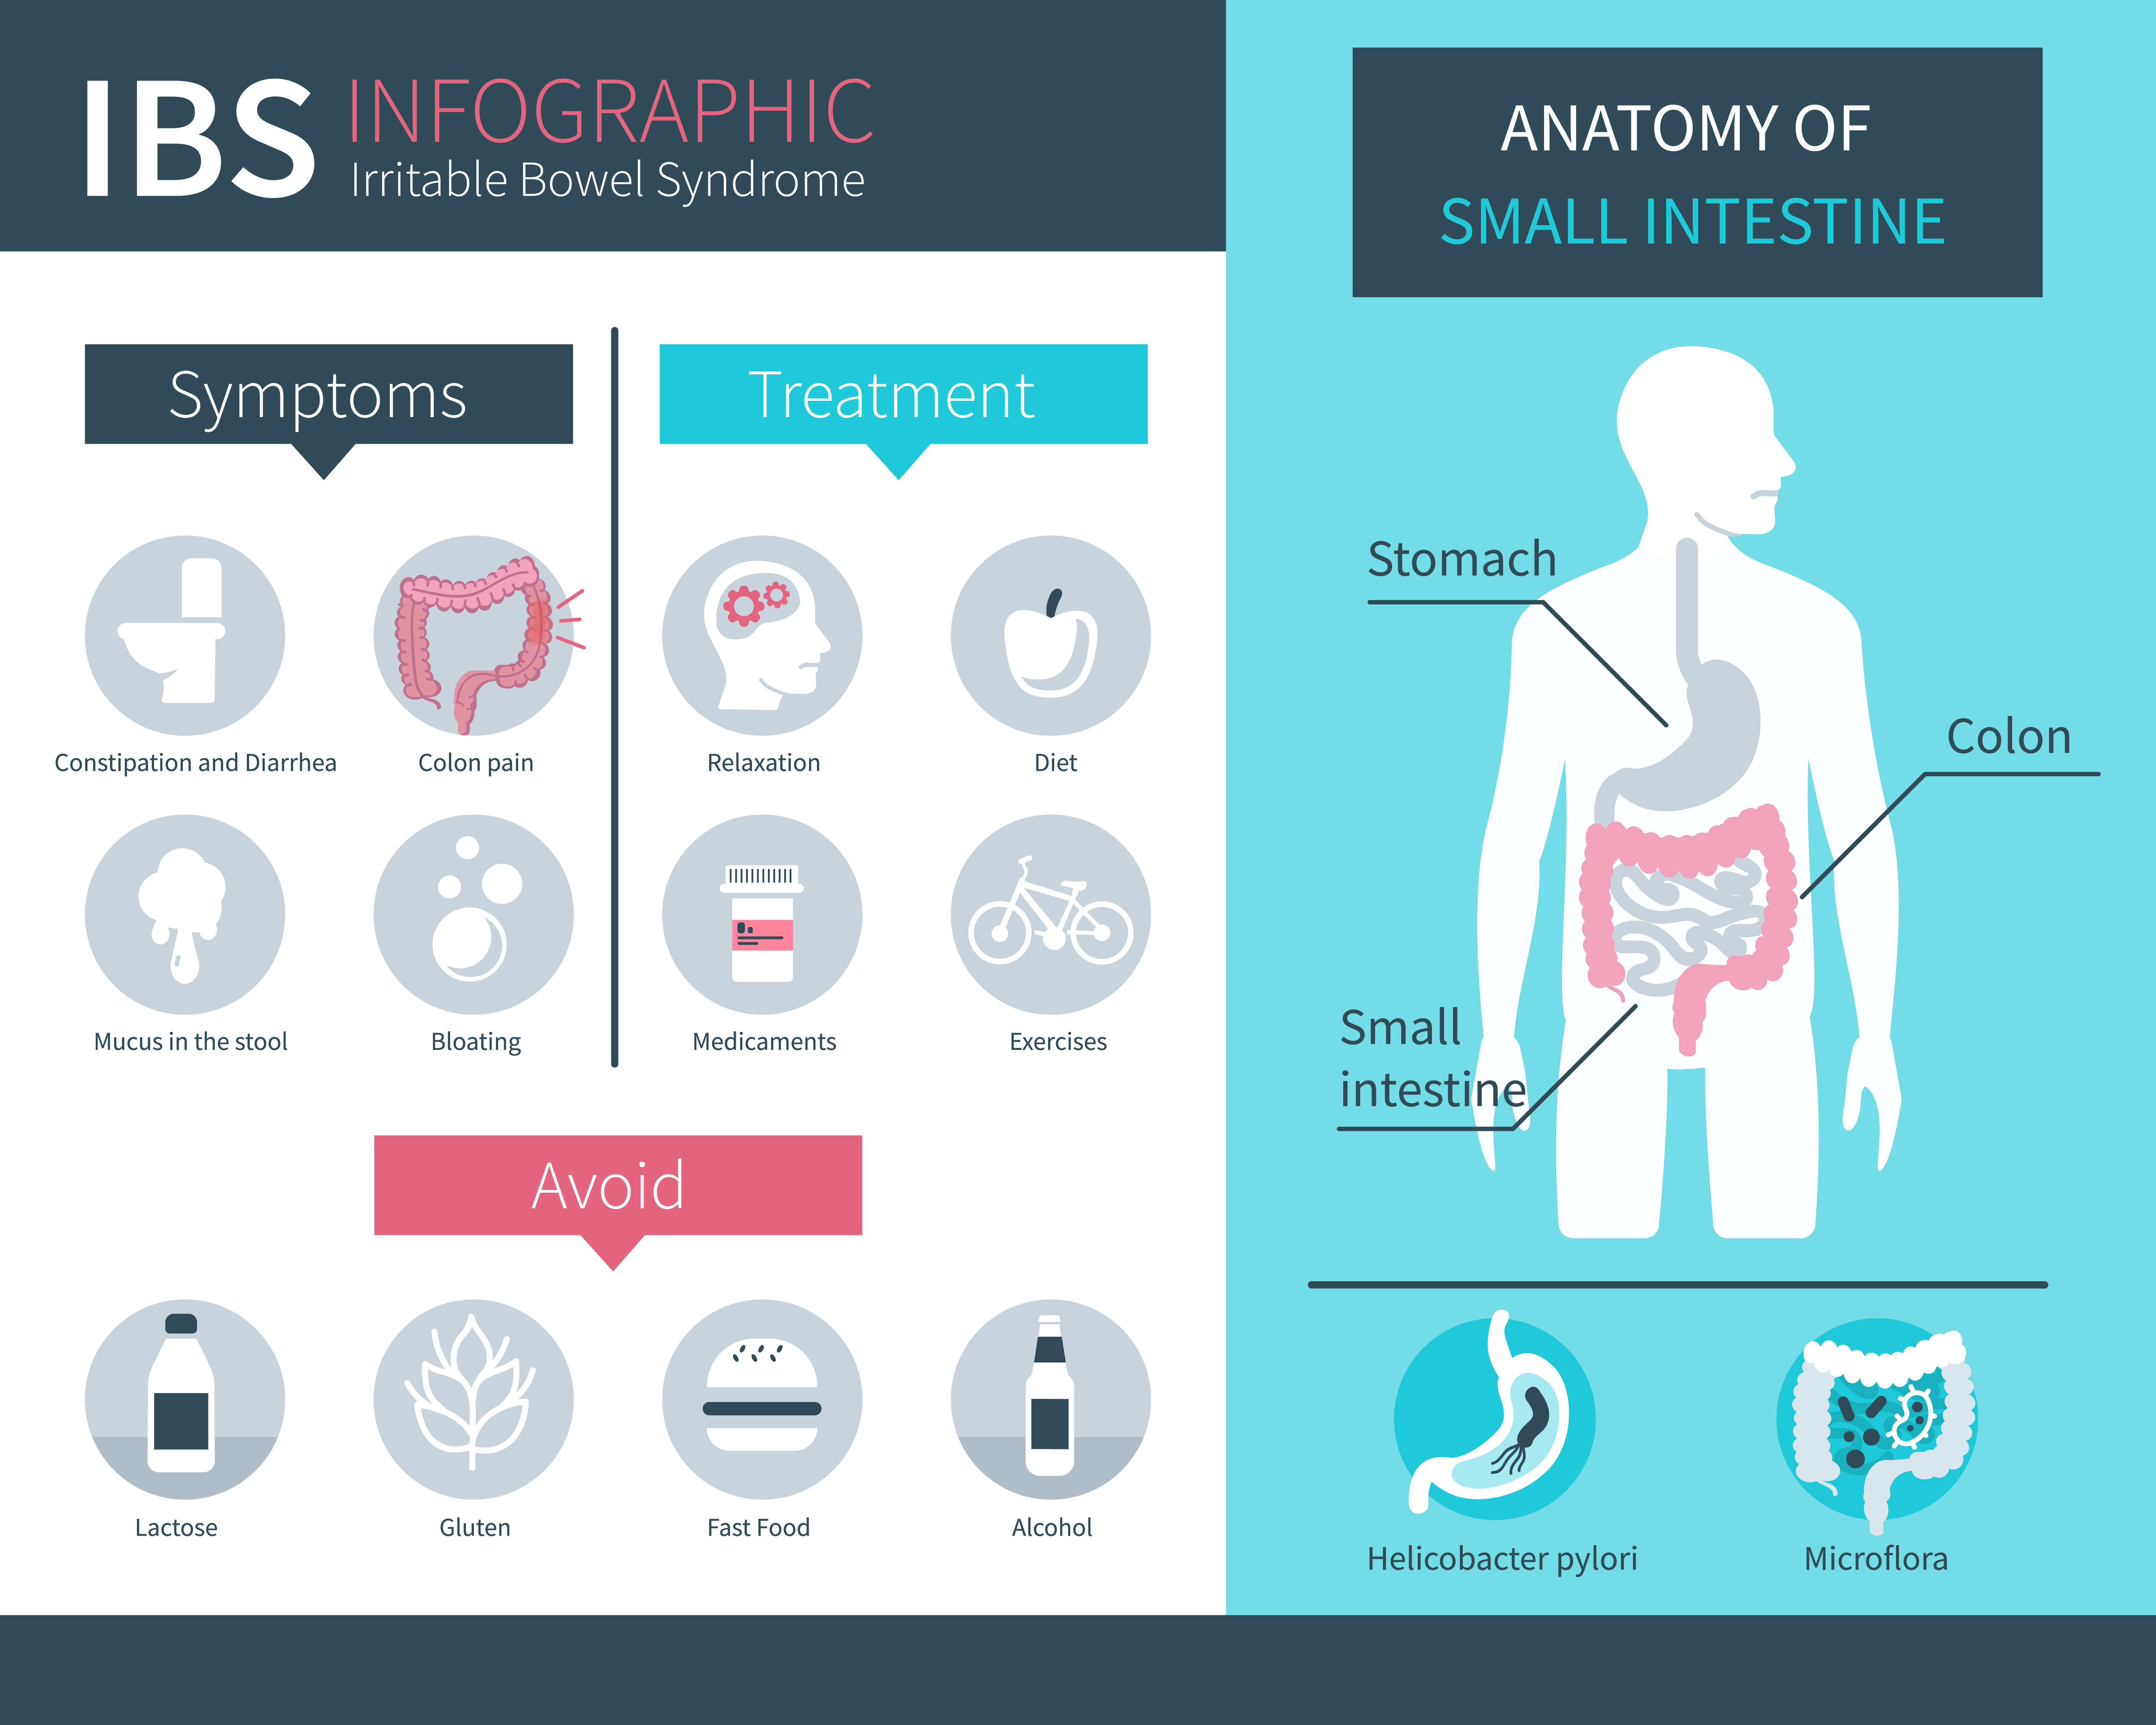 Irritable Bowel Syndrome basic information - infographic about symptoms and treatment suggestions